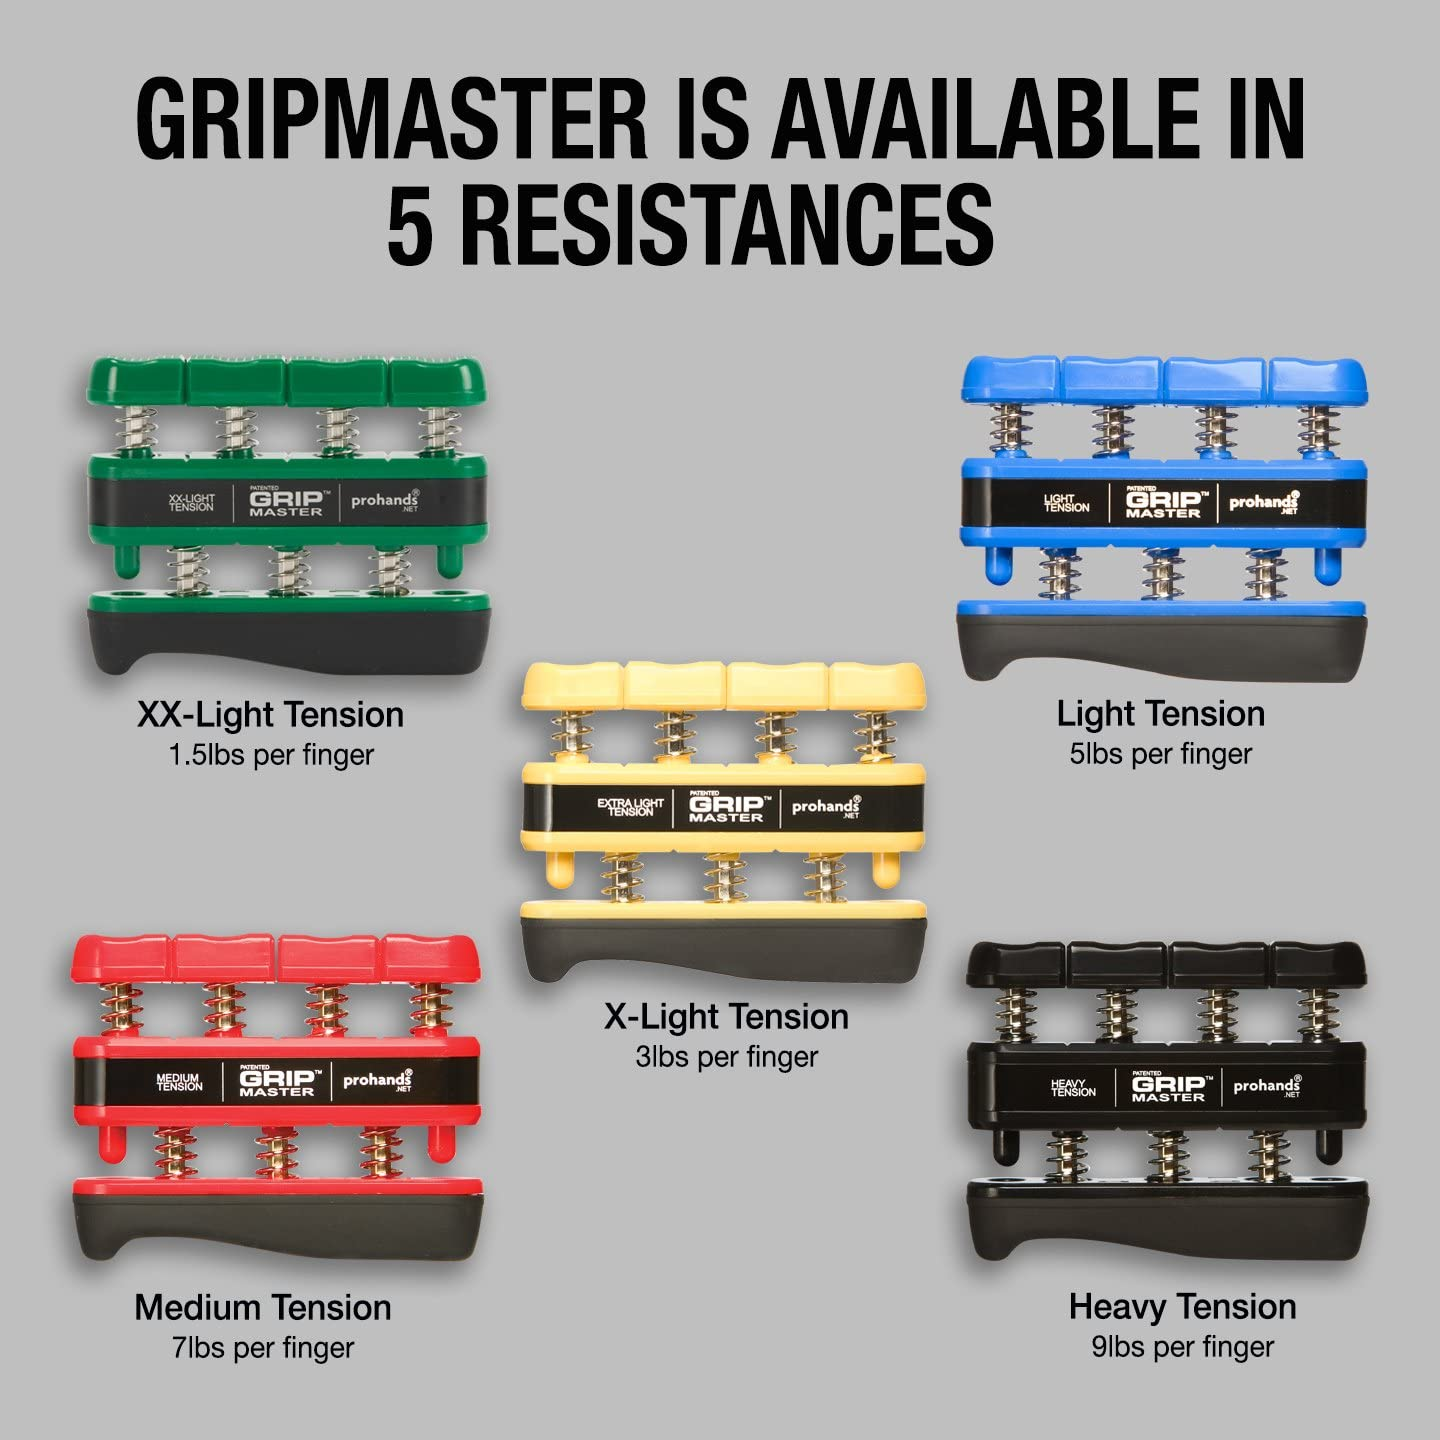 Gripmaster HEAVY Tension Prohands Hand Exerciser for every hand